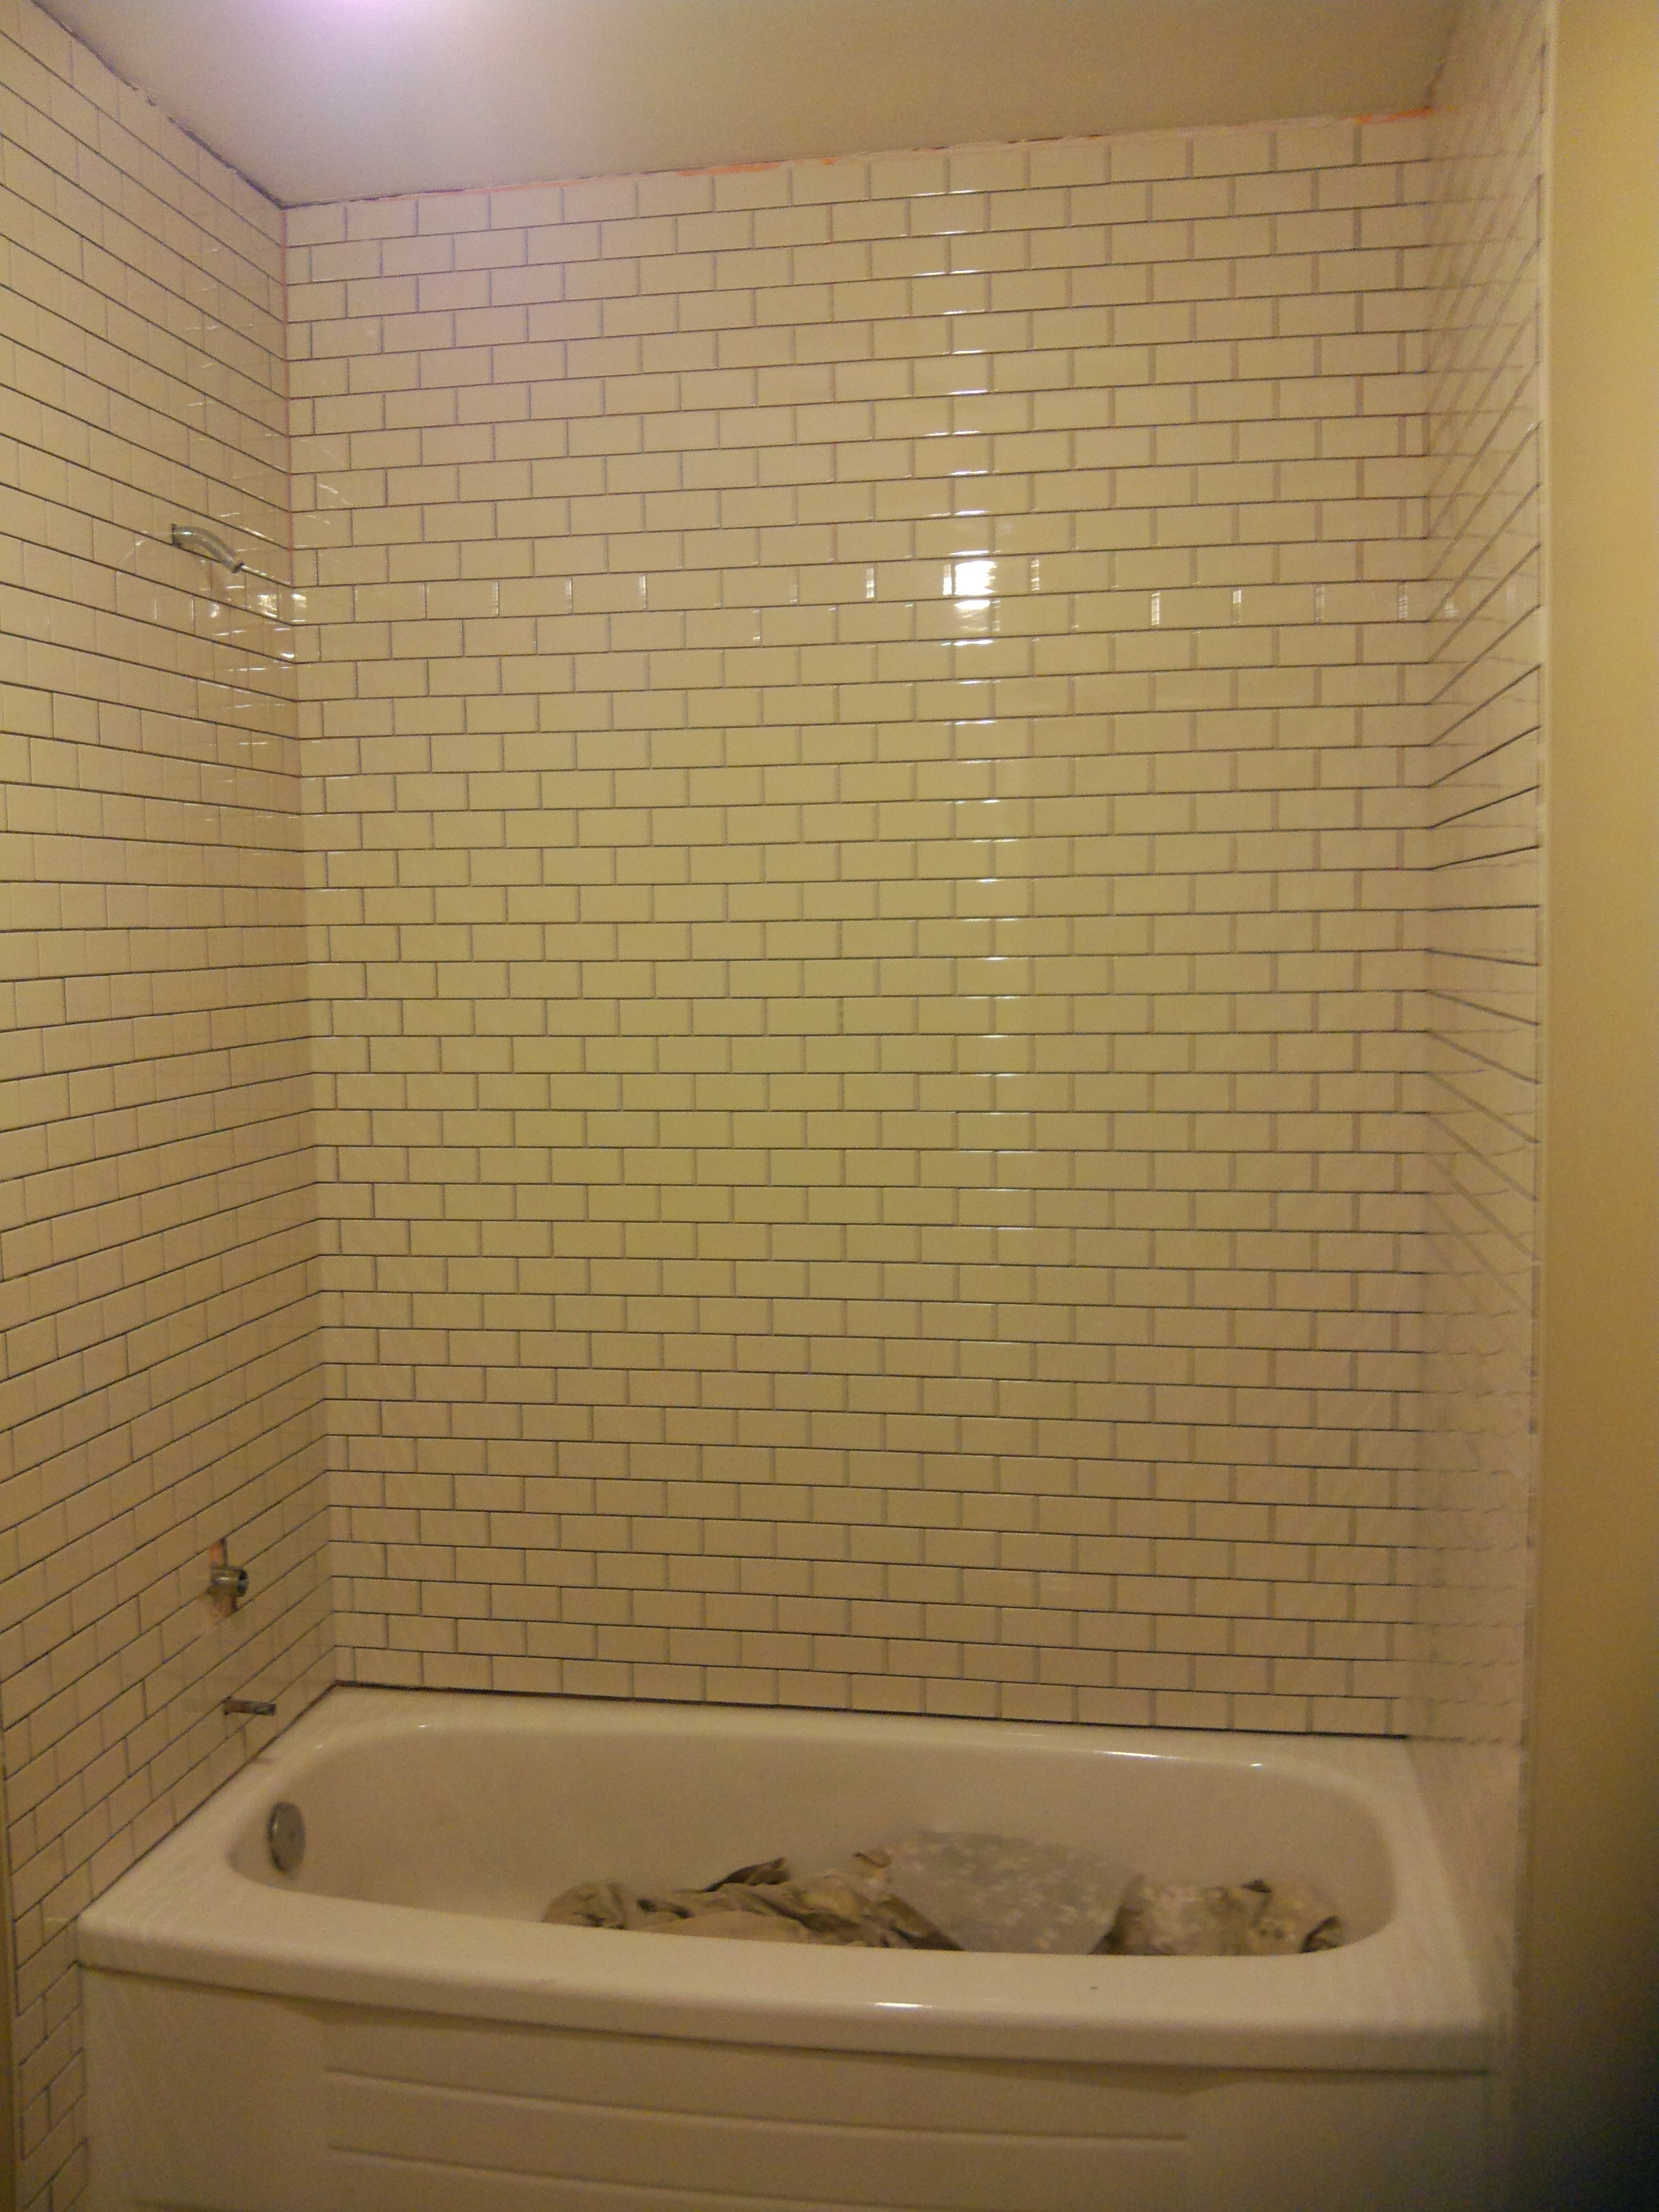 Remodeling a Small Bathroom C - Tiled Shower Stall